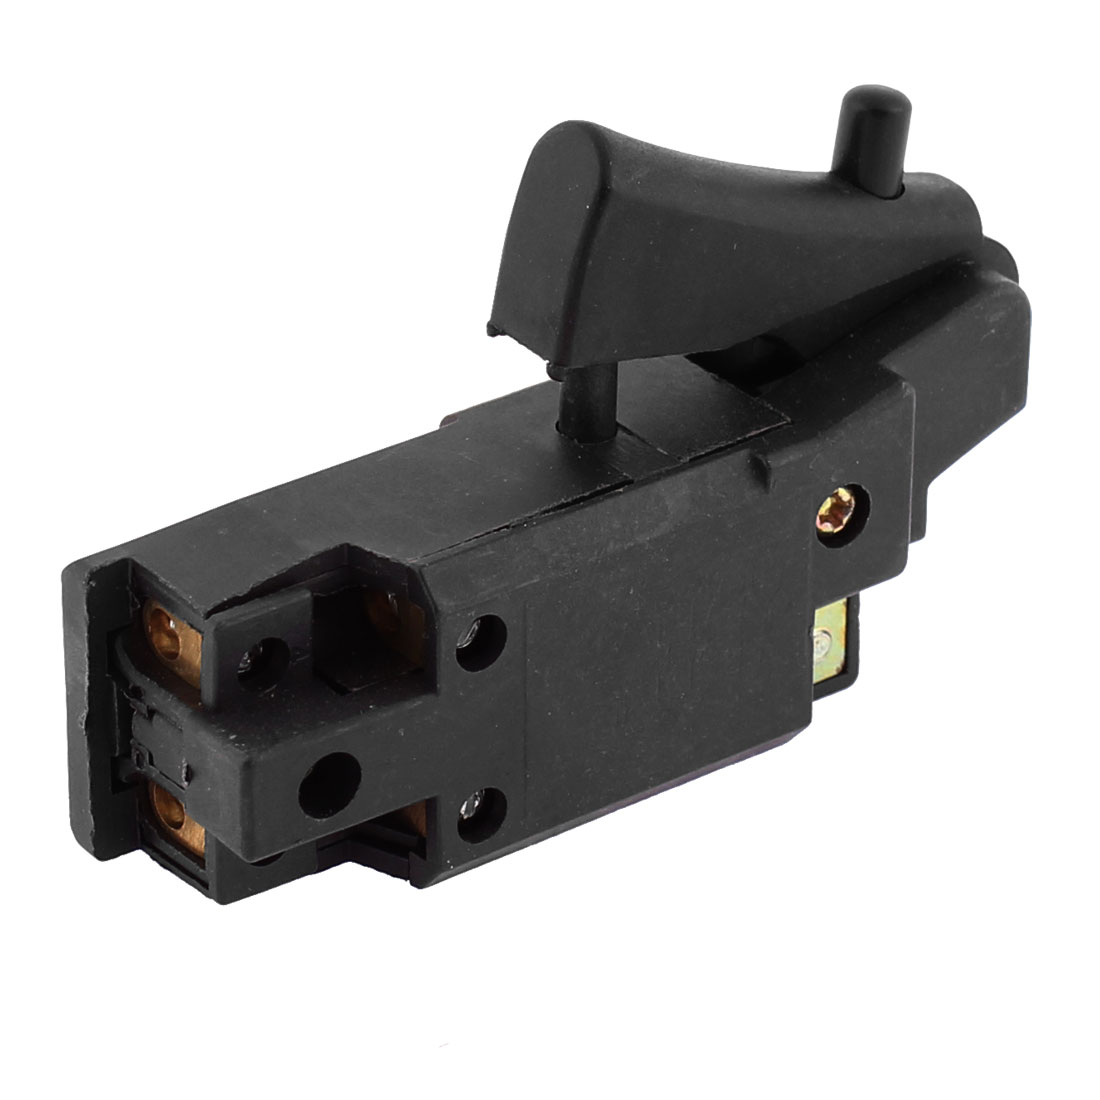 AC 250V 10A FA4-10/2B Rotary Hammer Power Tool Trigger Switch Black